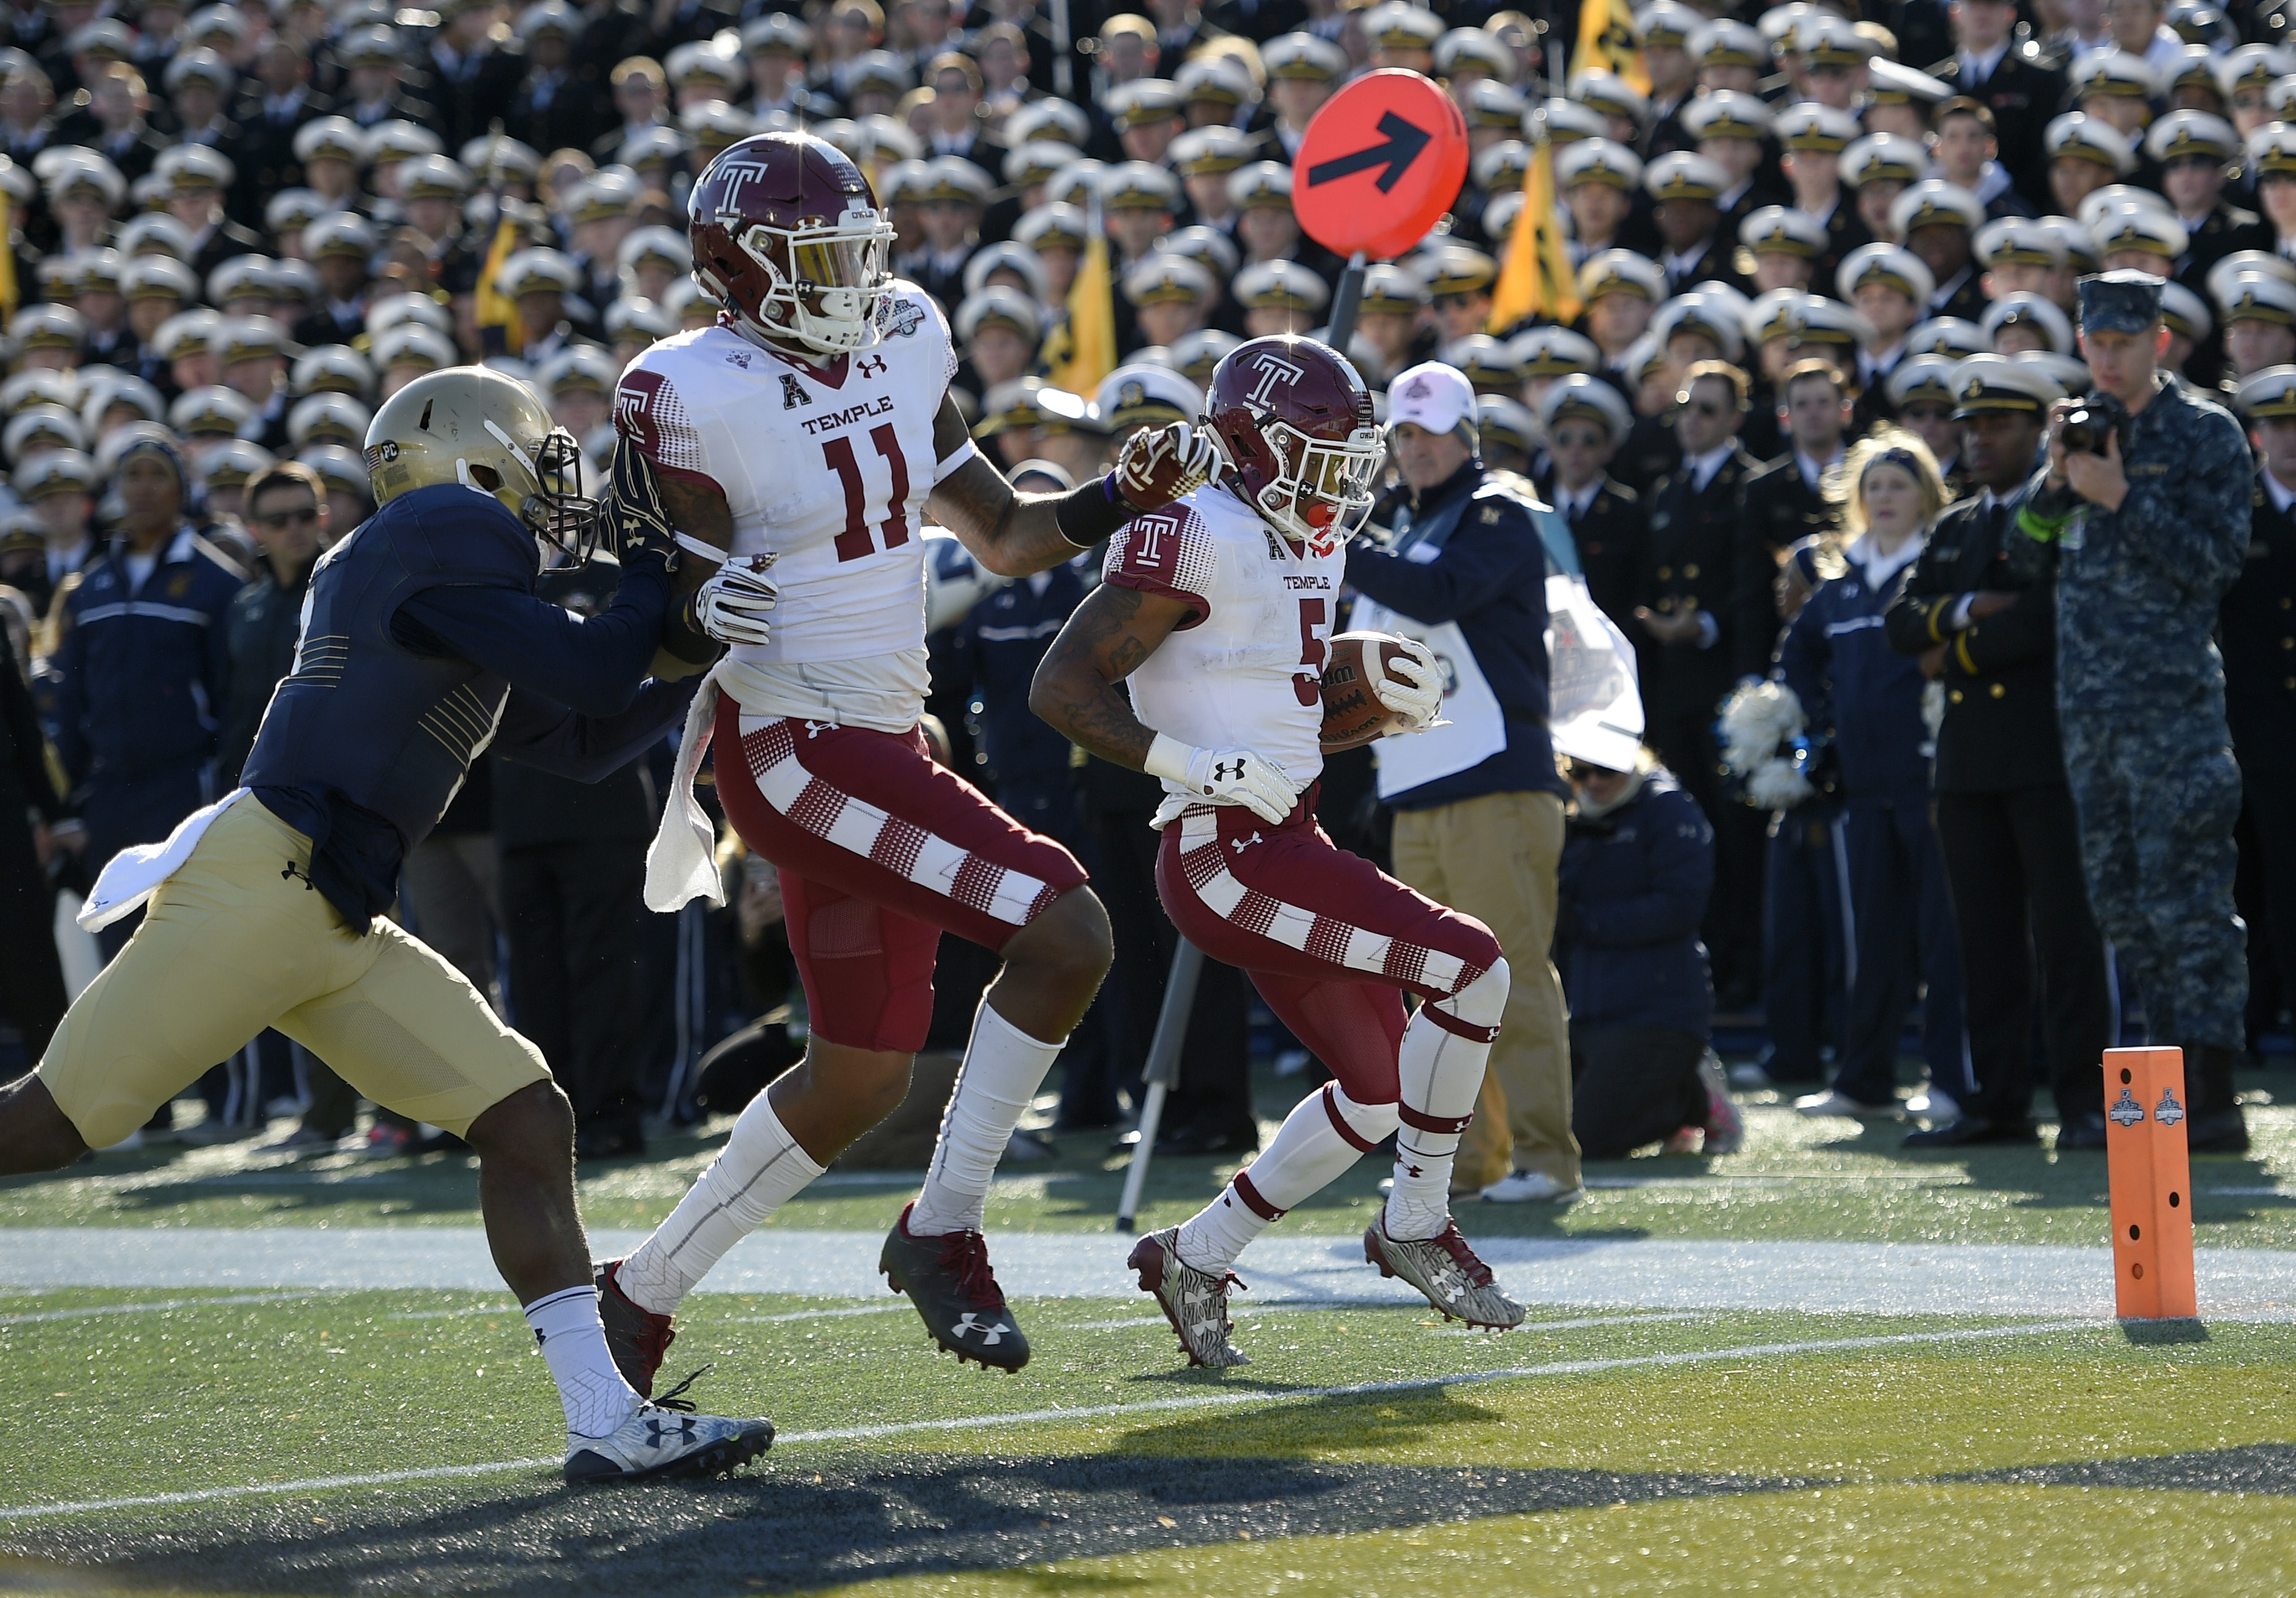 Temple running back Jahad Thomas (5) scores a touchdown against Navy cornerback Jarid Ryan, left, during the first half of the American Athletic Conference championship NCAA college football game, Saturday, Dec. 3, 2016, in Annapolis, Md. Temple tight end